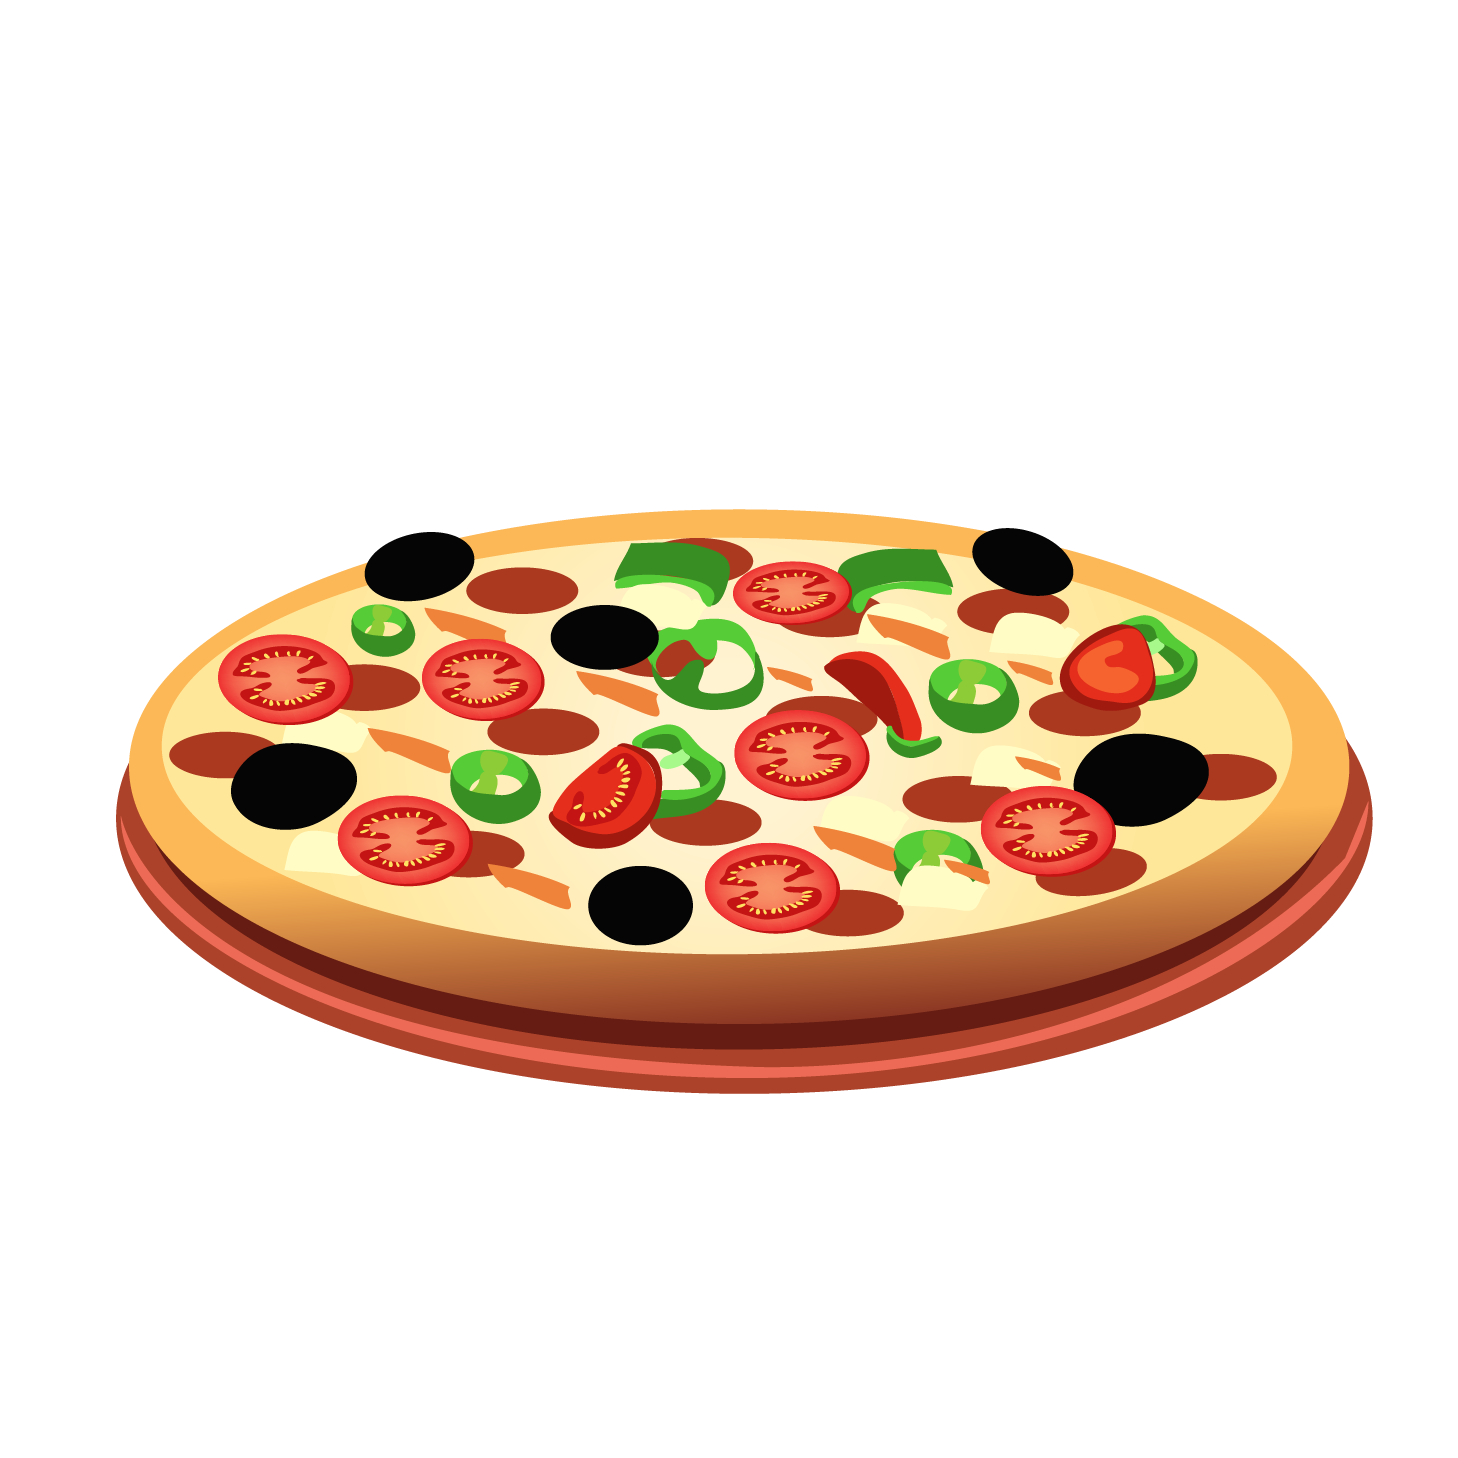 Italian cuisine spaghetti with. Food clipart pizza